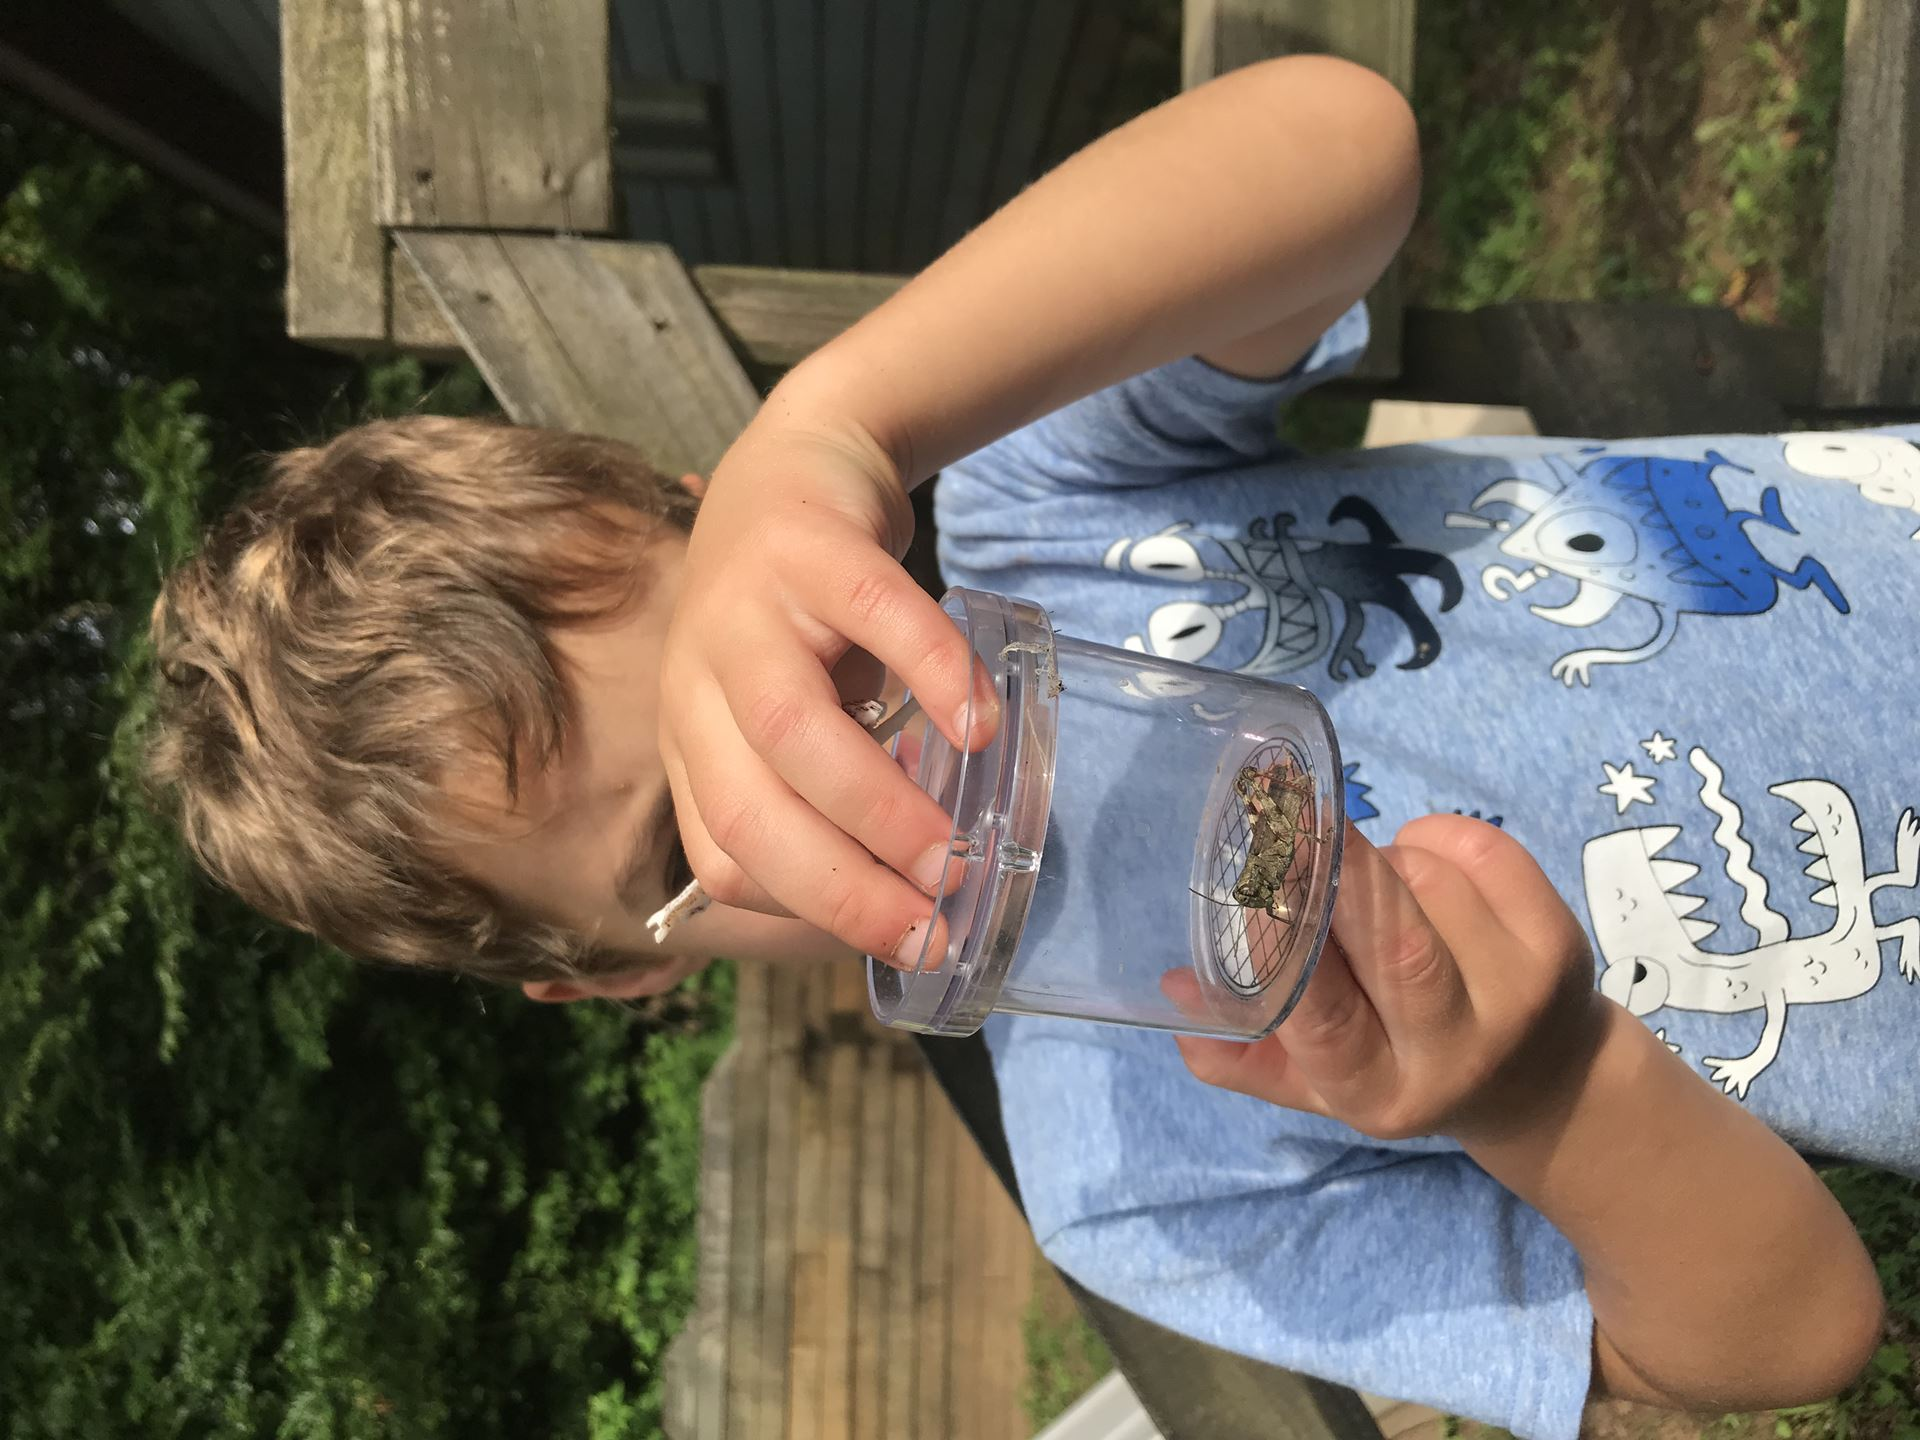 a boy in a blue shirt is looking at a cicada inside a clear insect jar